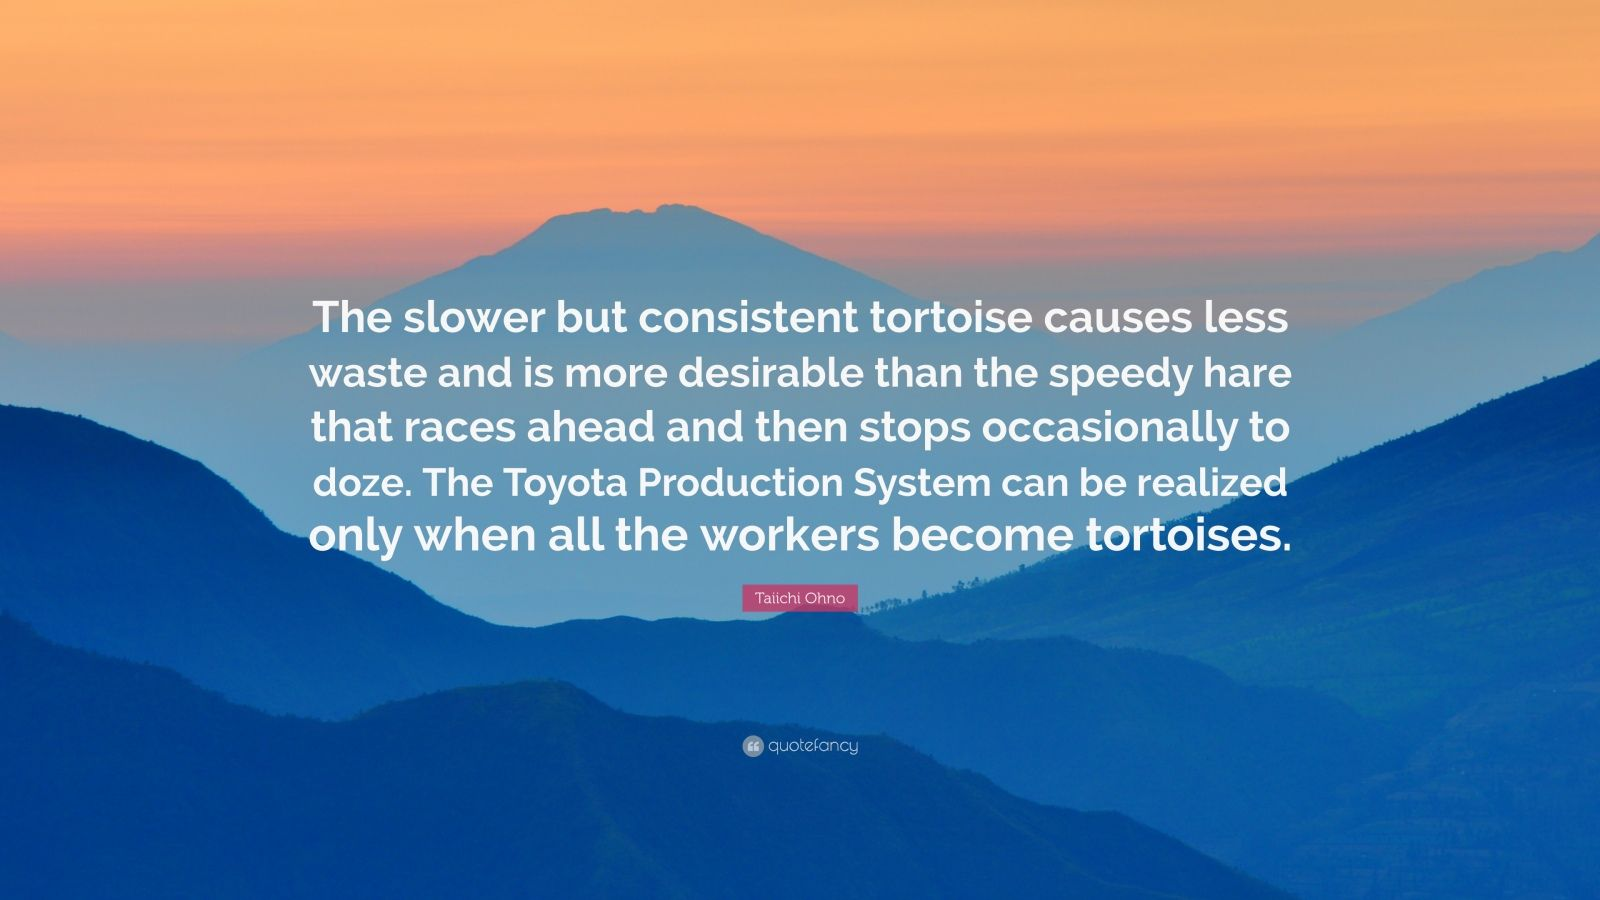 """Taiichi Ohno Quote: """"The slower but consistent tortoise causes less waste and is more desirable than the speedy hare that races ahead and then stops occasionally to doze. The Toyota Production System can be realized only when all the workers become tortoises."""""""